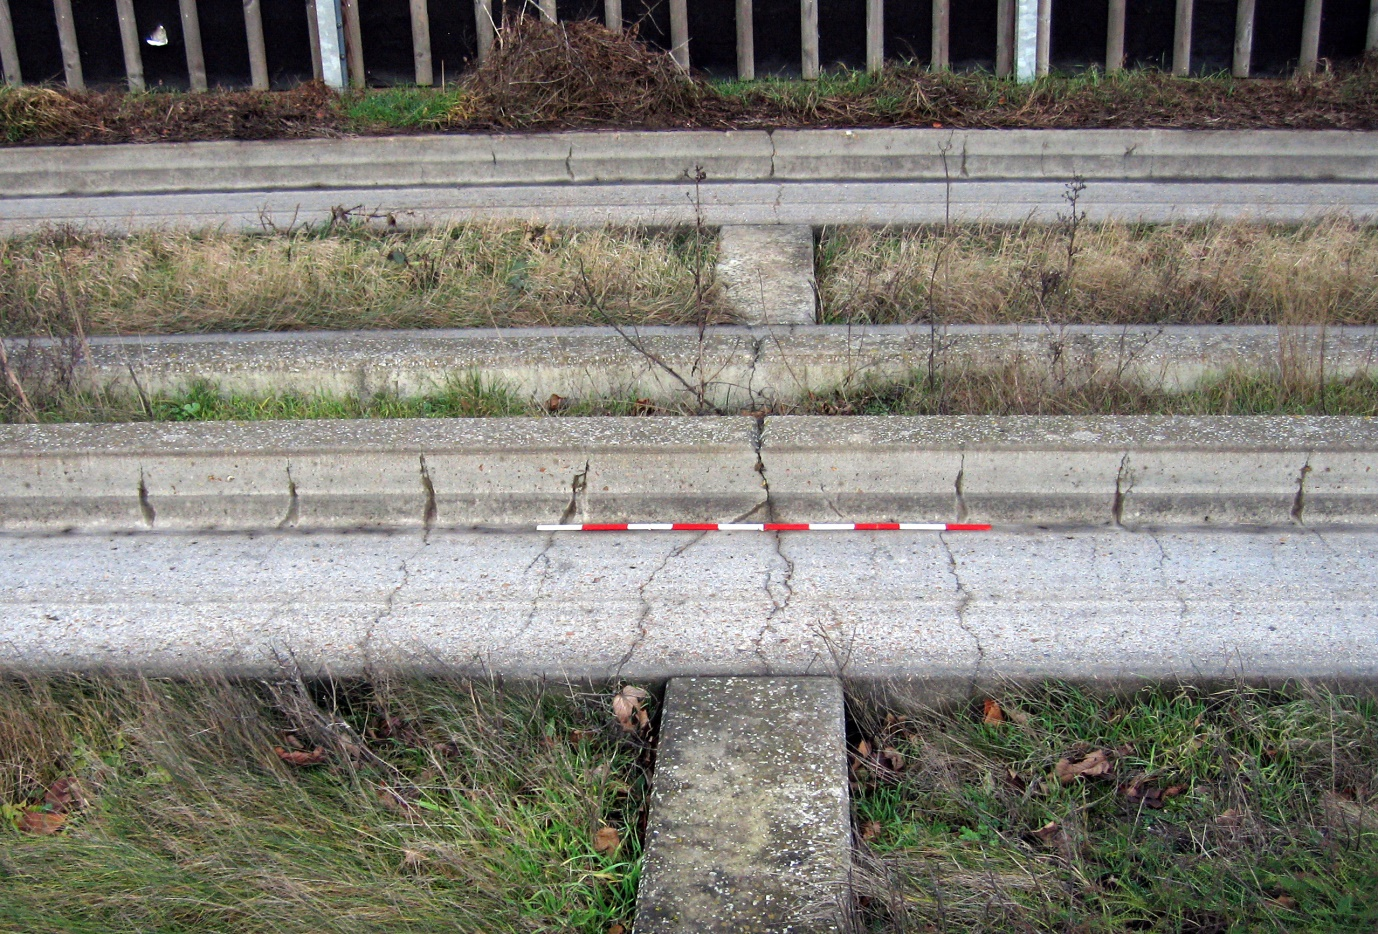 View of the middle of a Guided Busway beam